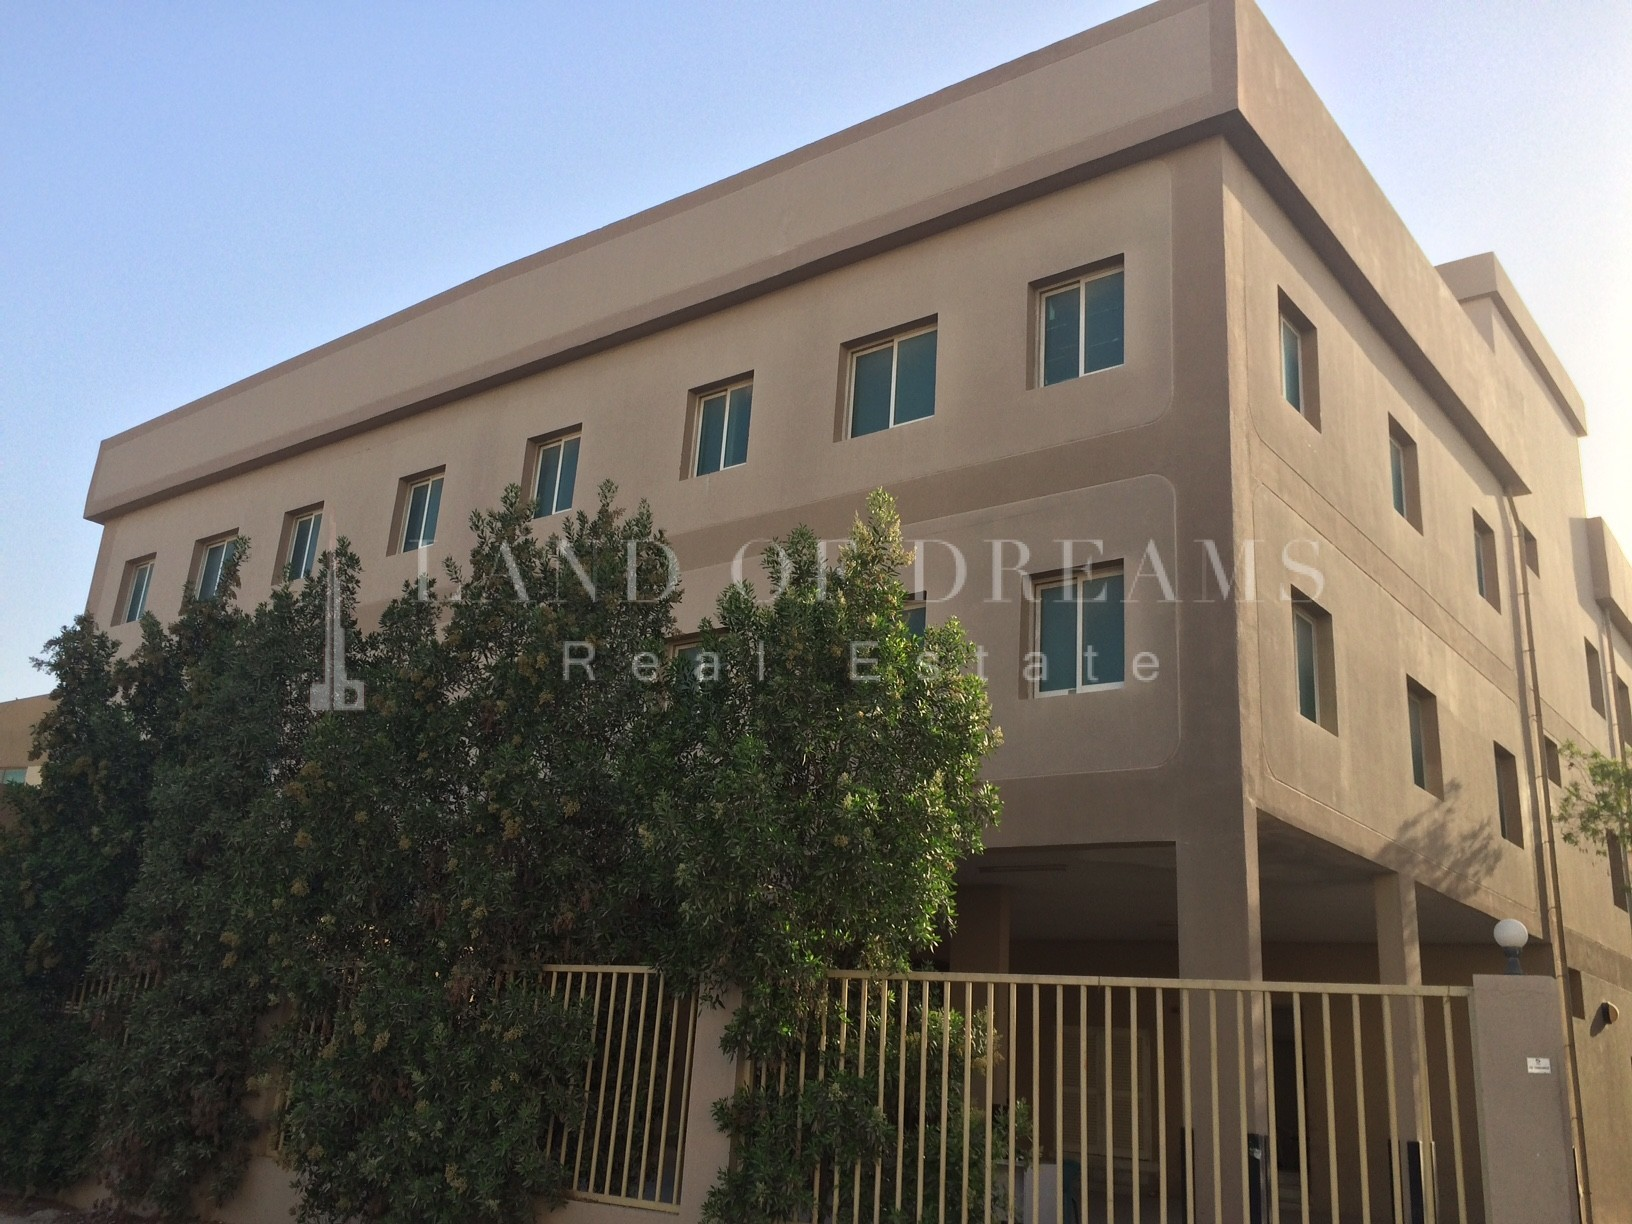 5-to-99-rooms-in-new-camp-at-jebel-ali-3